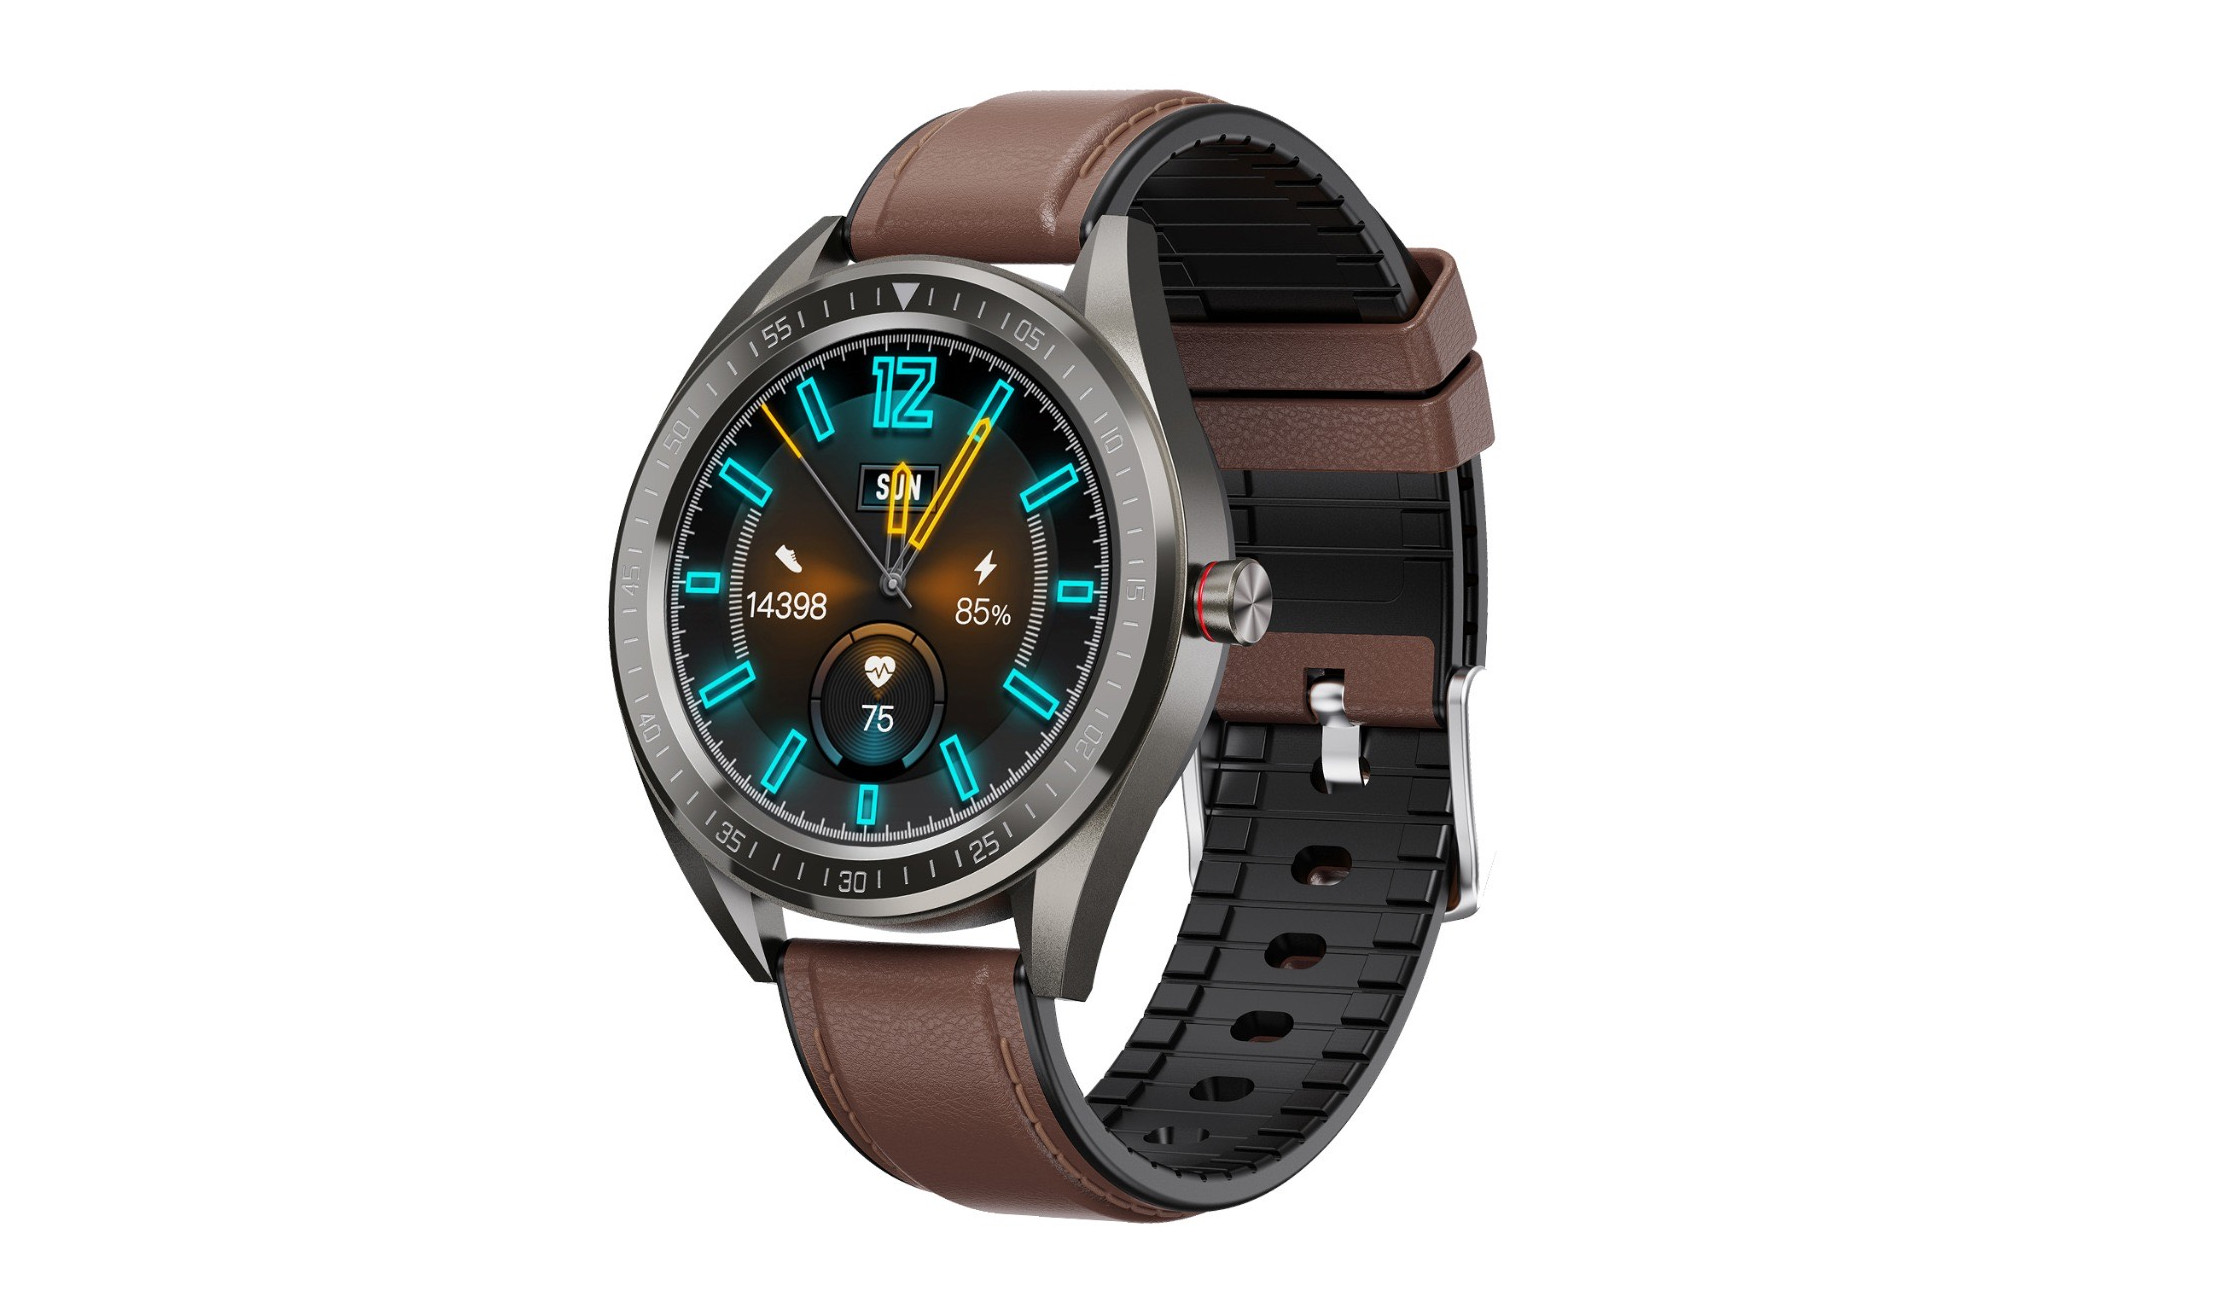 AQFIT launches W14 fitness Smart Watch for Rs 3699